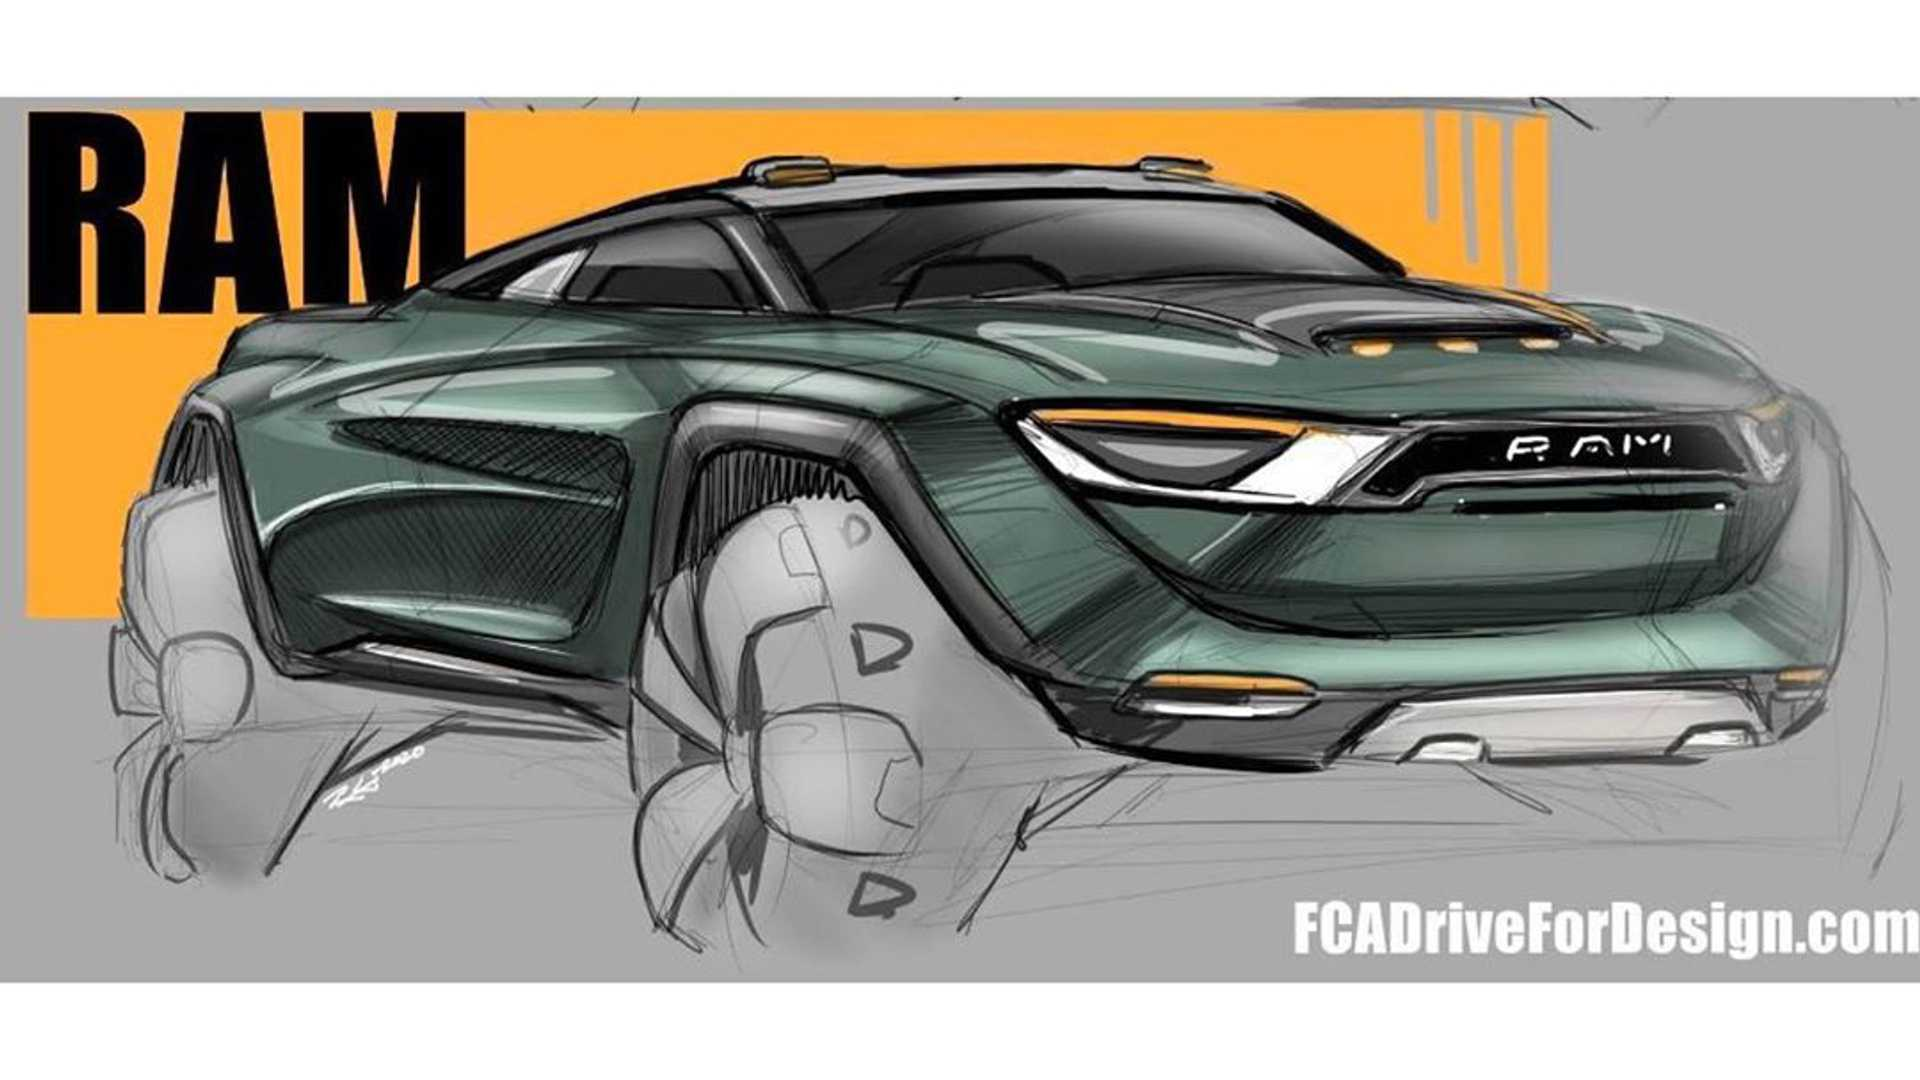 fca-drive-for-design-ram-sketch-battle-7